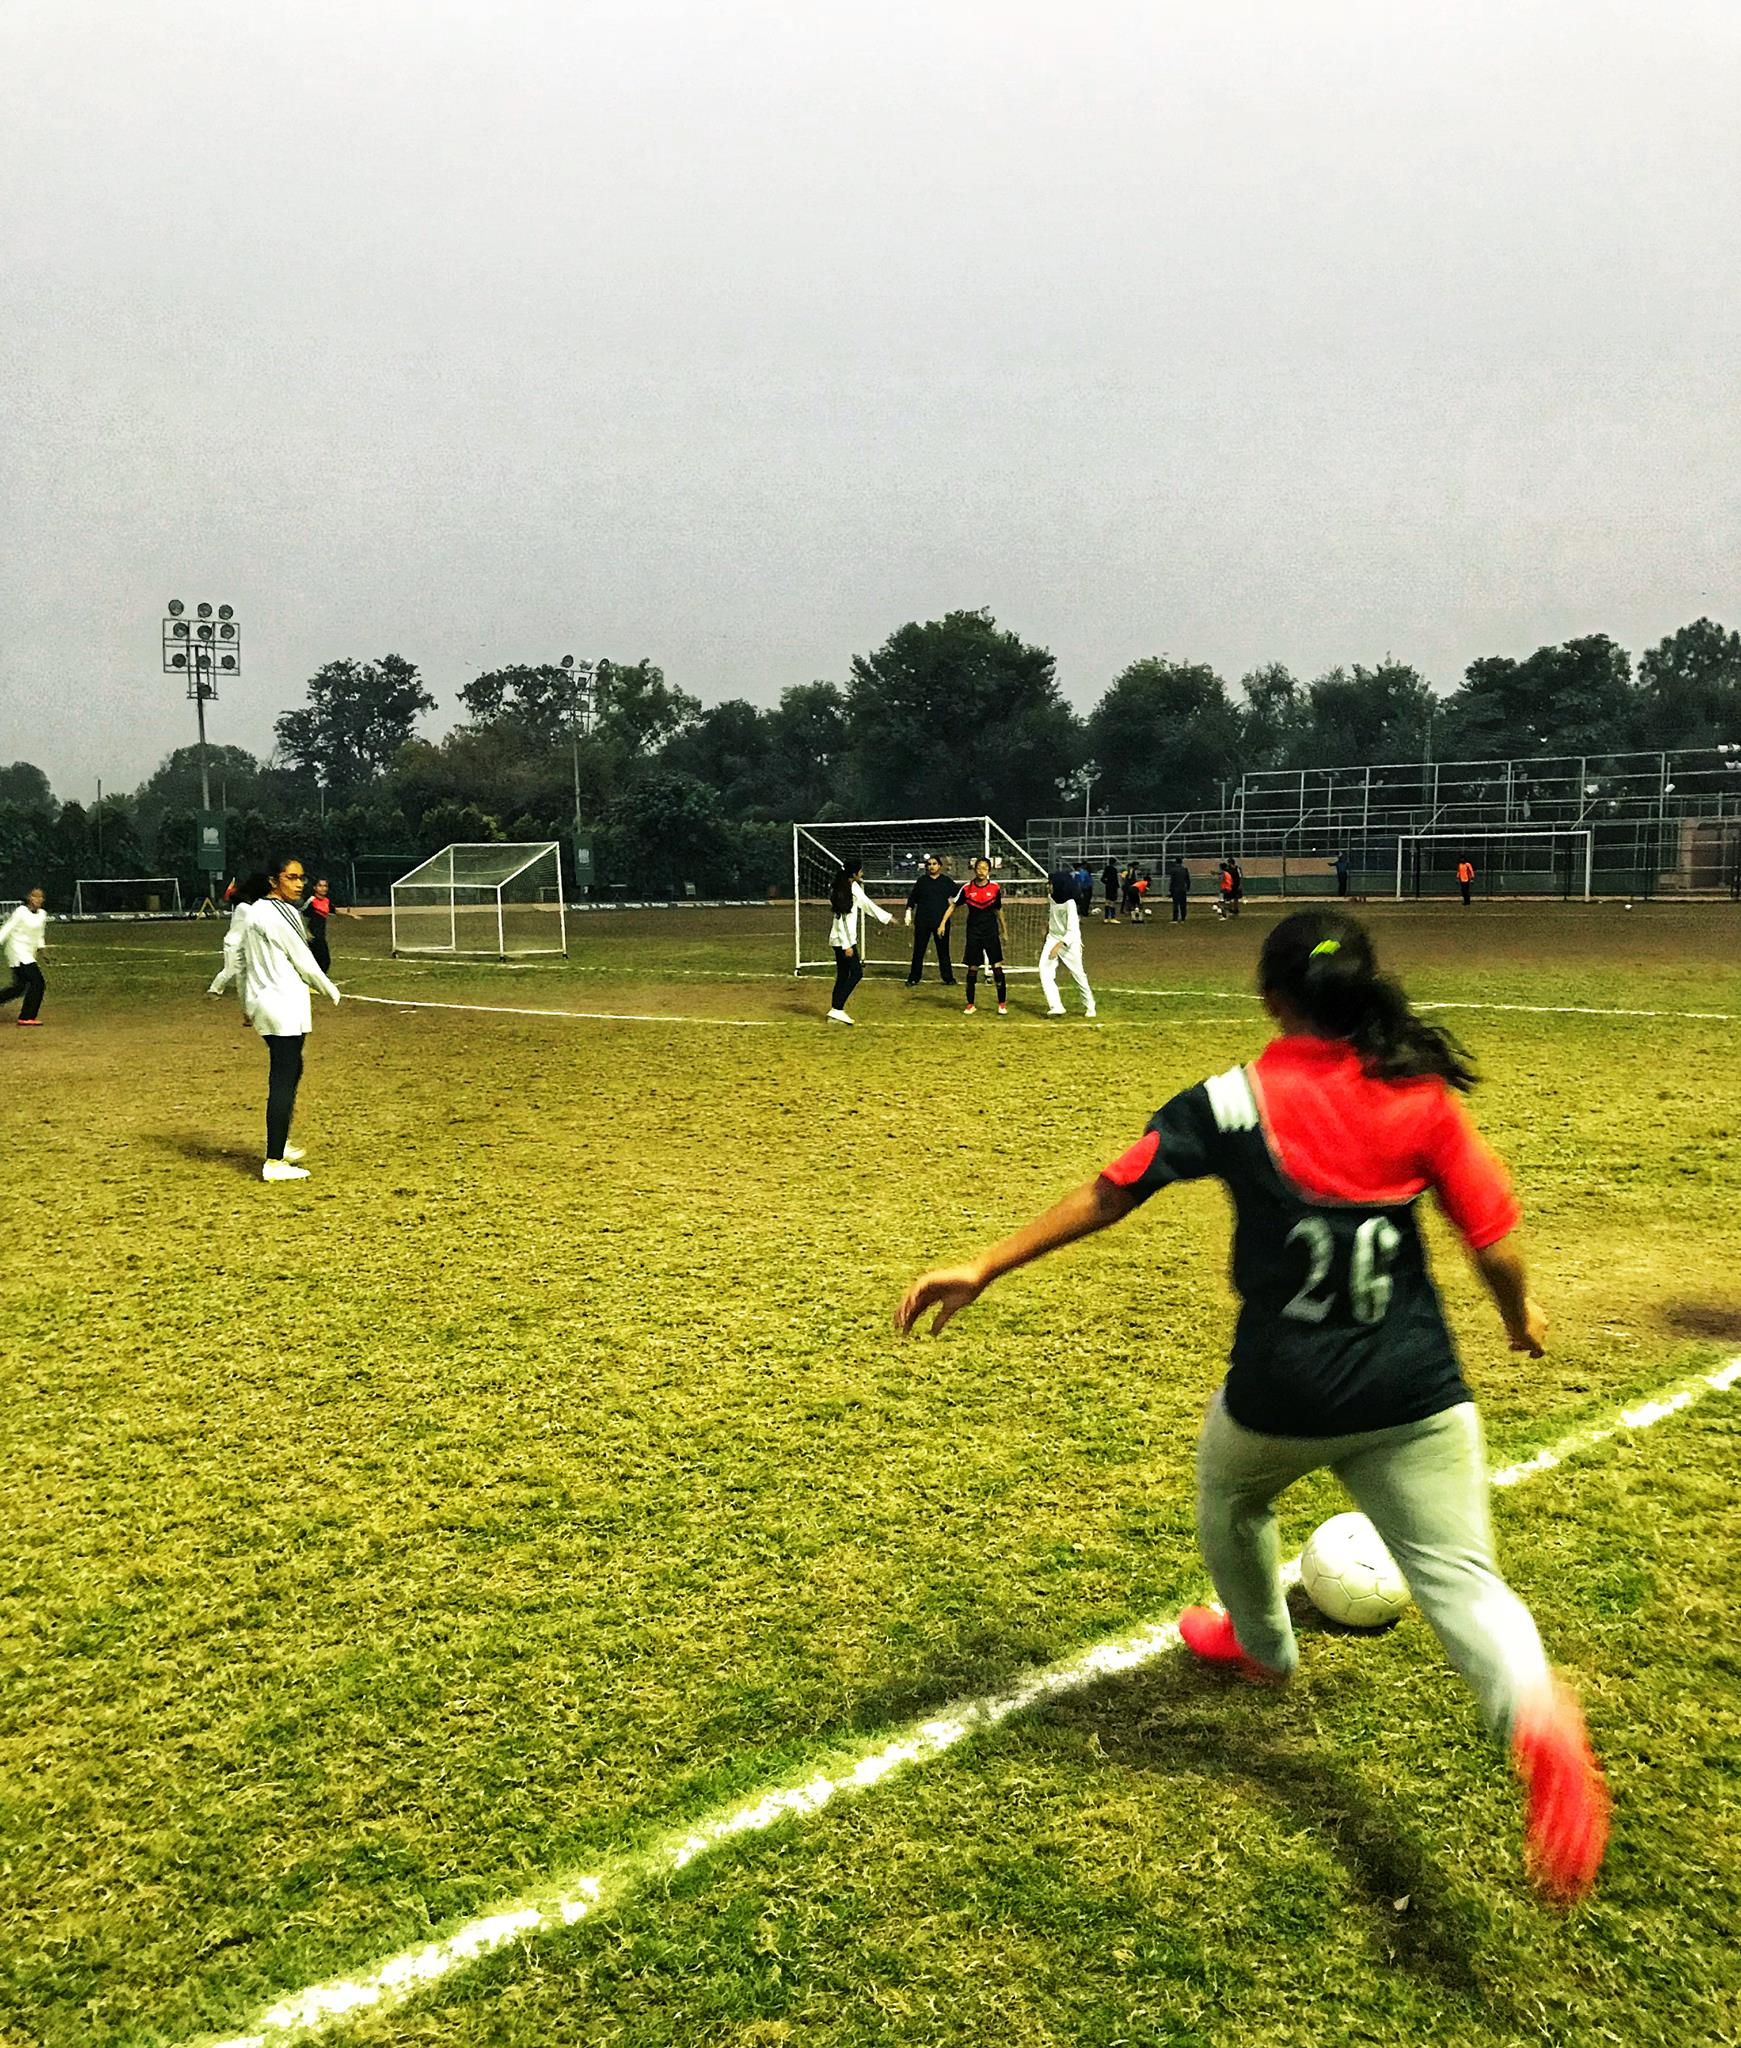 EducationUSA Lahore organized its first ever girls' soccer tournament